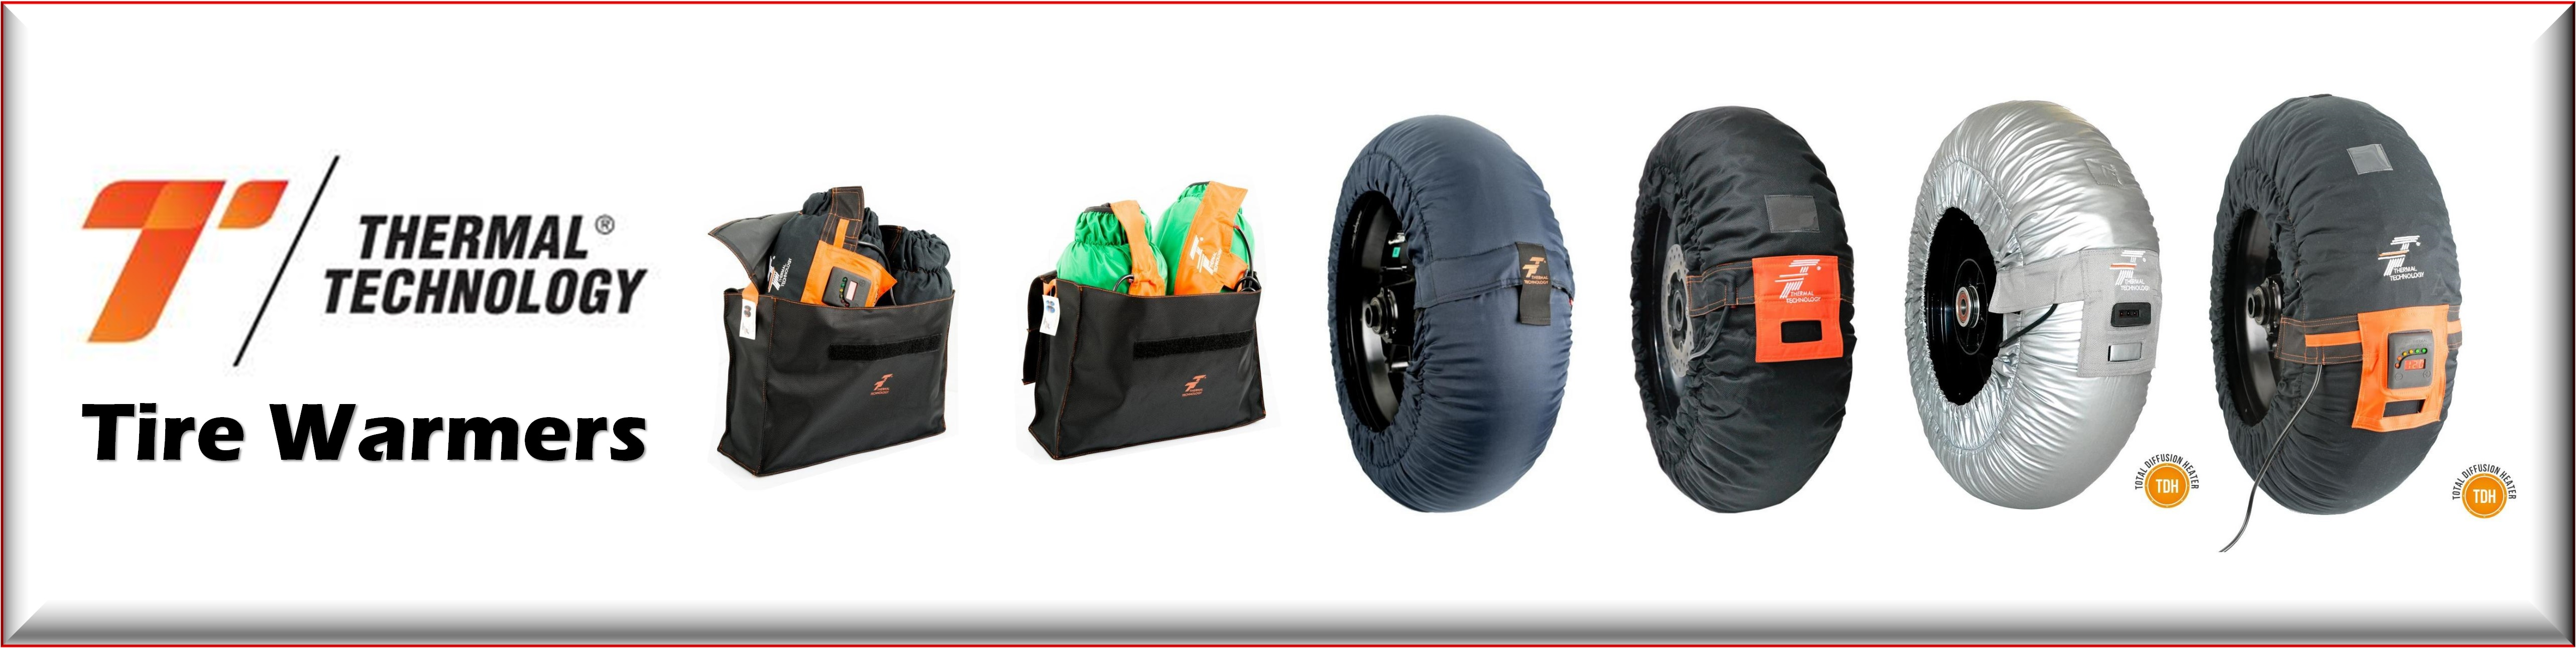 Thermal Technology Tire Warmers